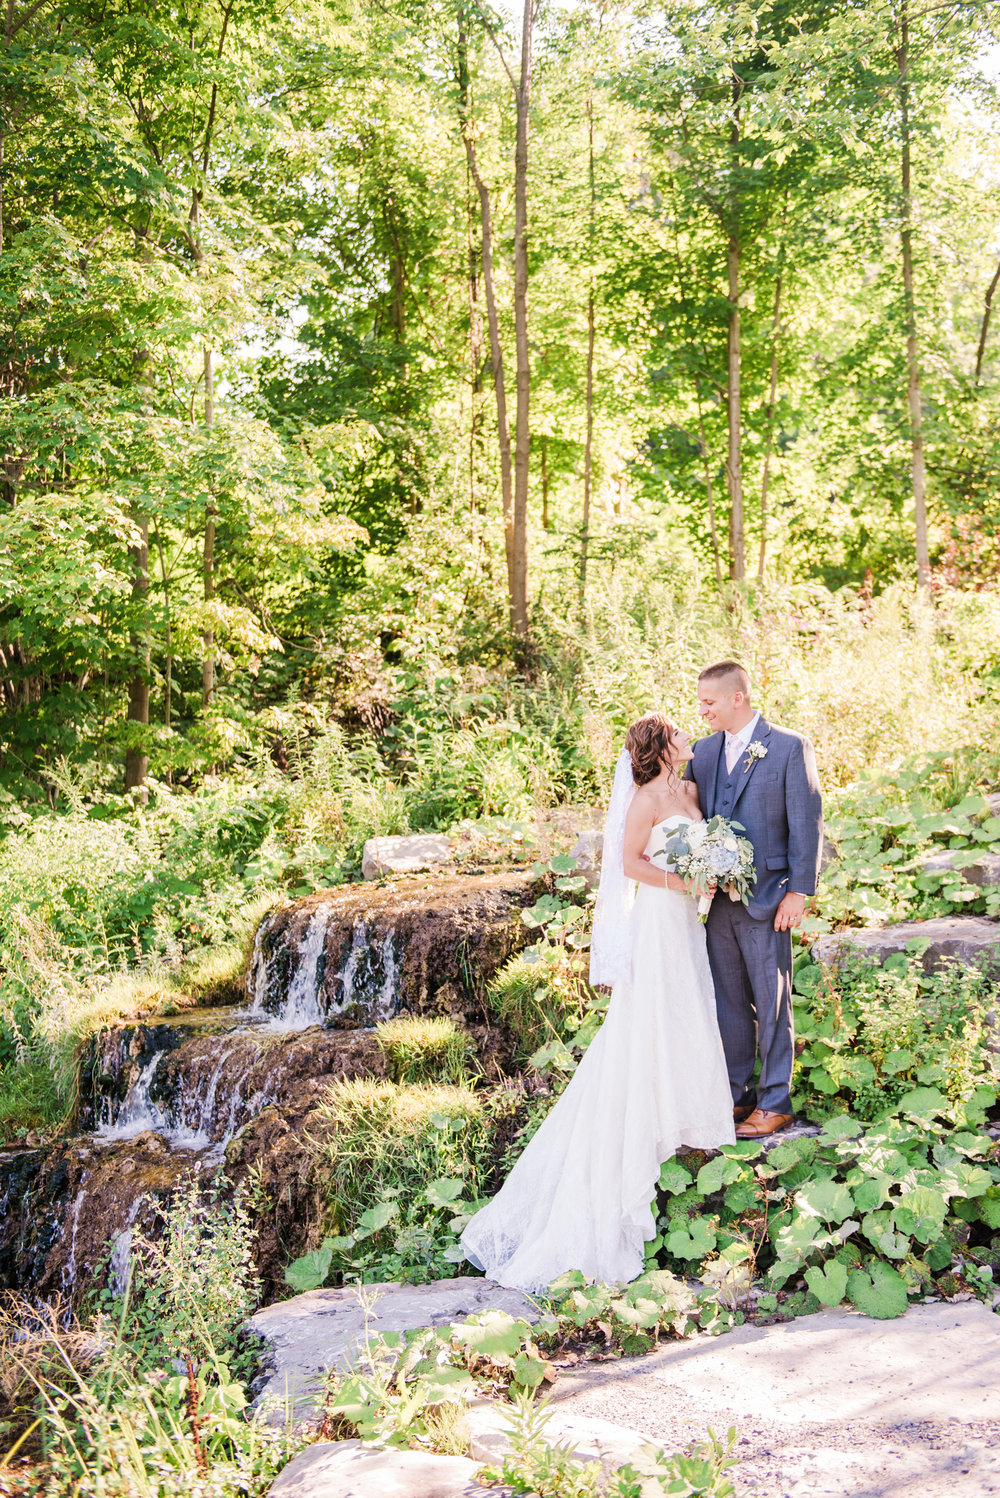 Wolf_Oak_Acres_Central_NY_Wedding_JILL_STUDIO_Rochester_NY_Photographer_DSC_5356.jpg